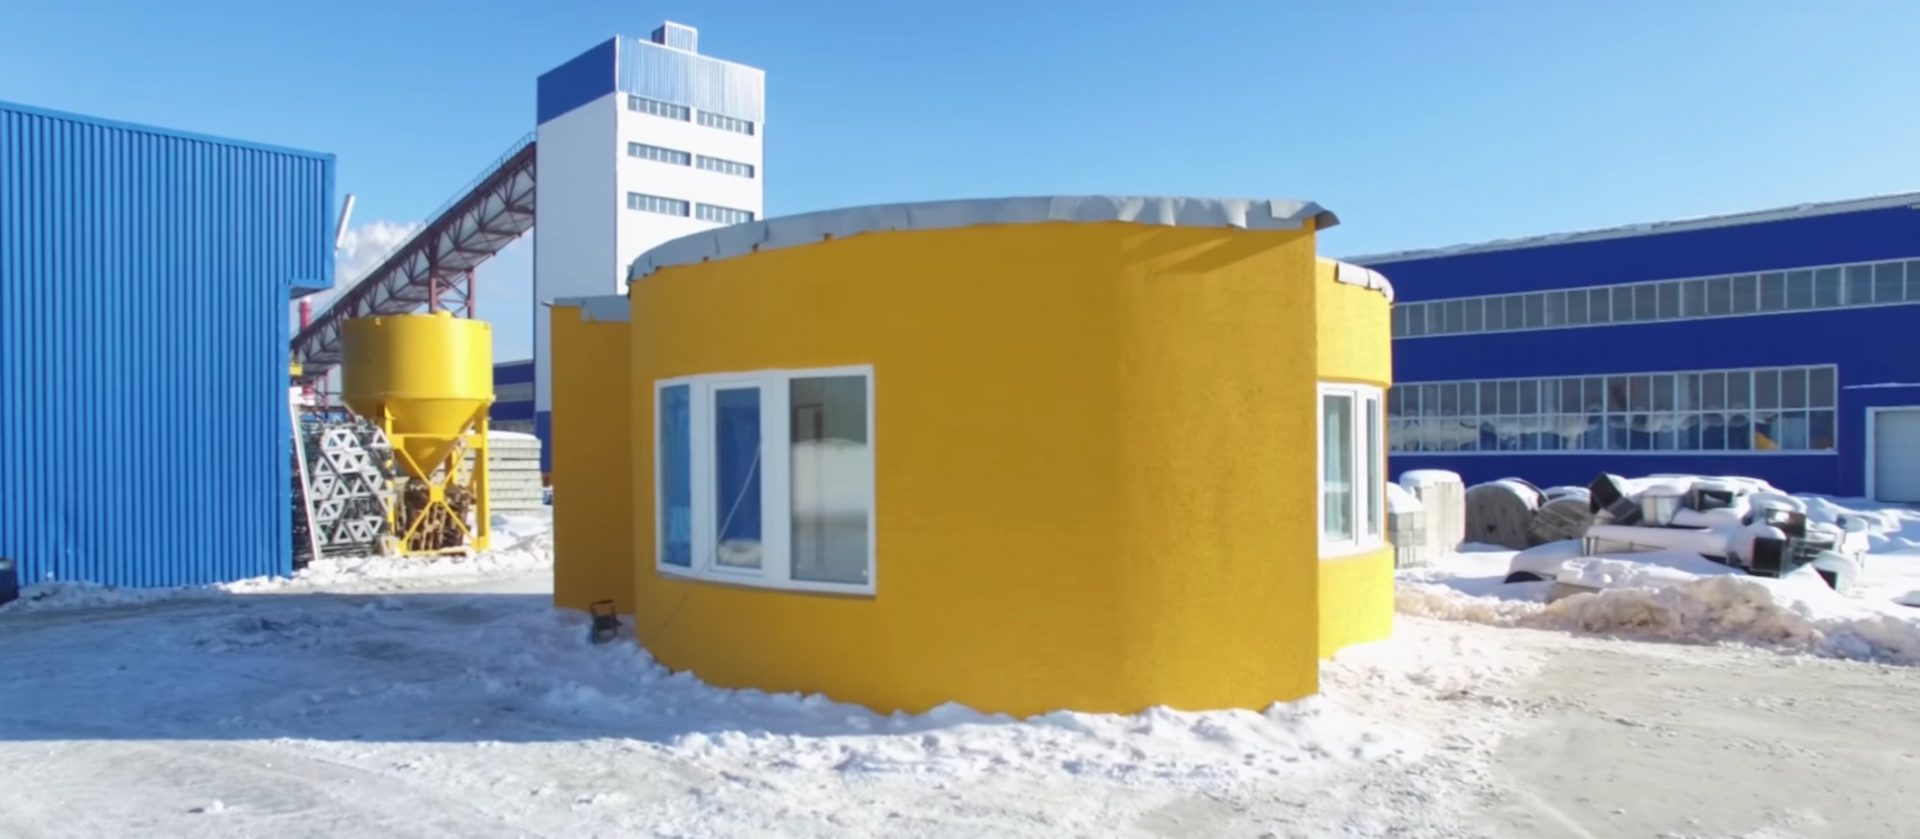 3D Printed A Full Size House Within a Day